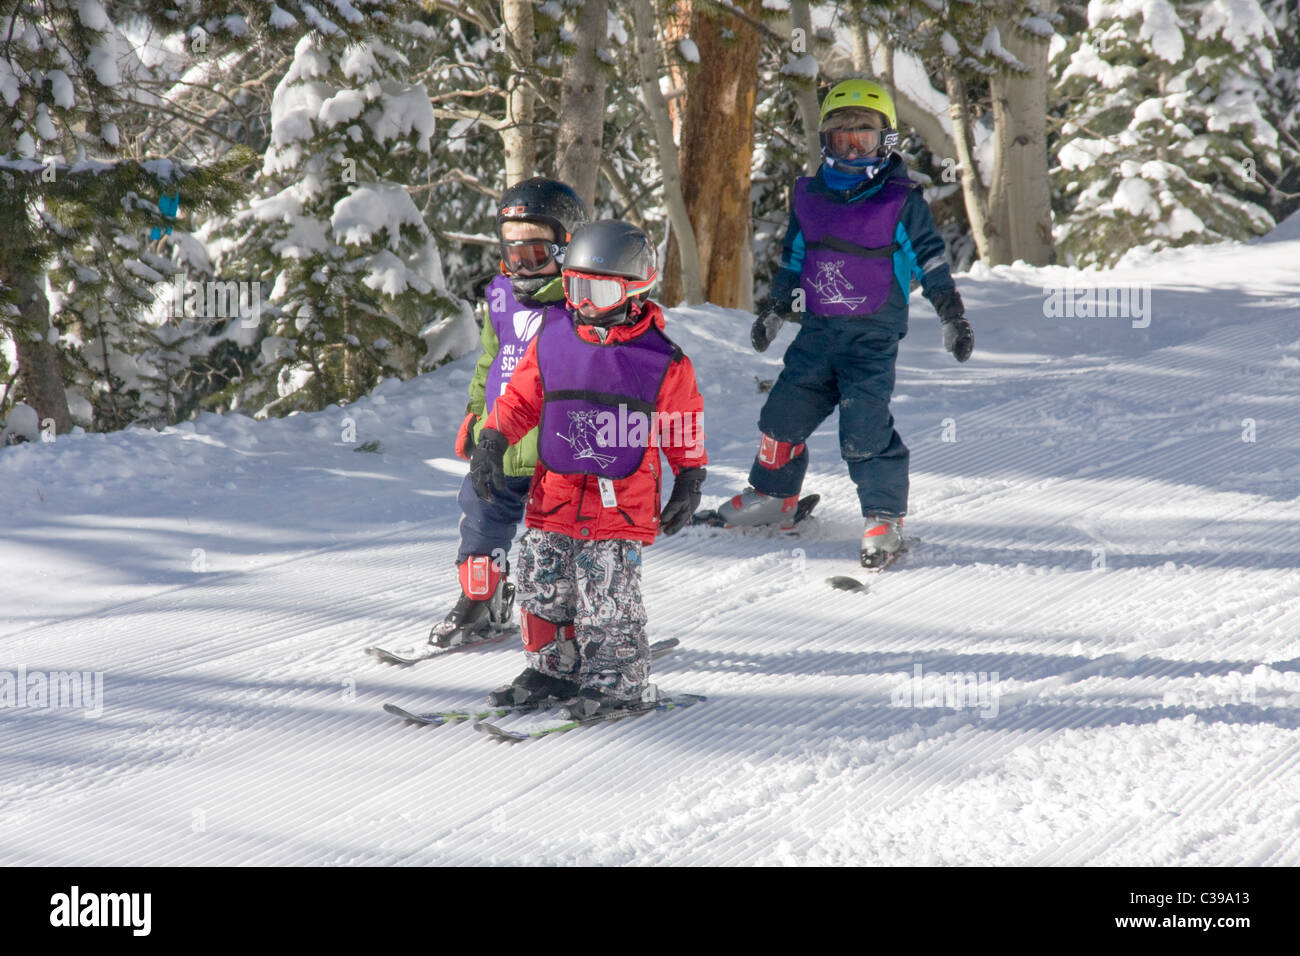 kids ski school instructor and students, winter park resort stock